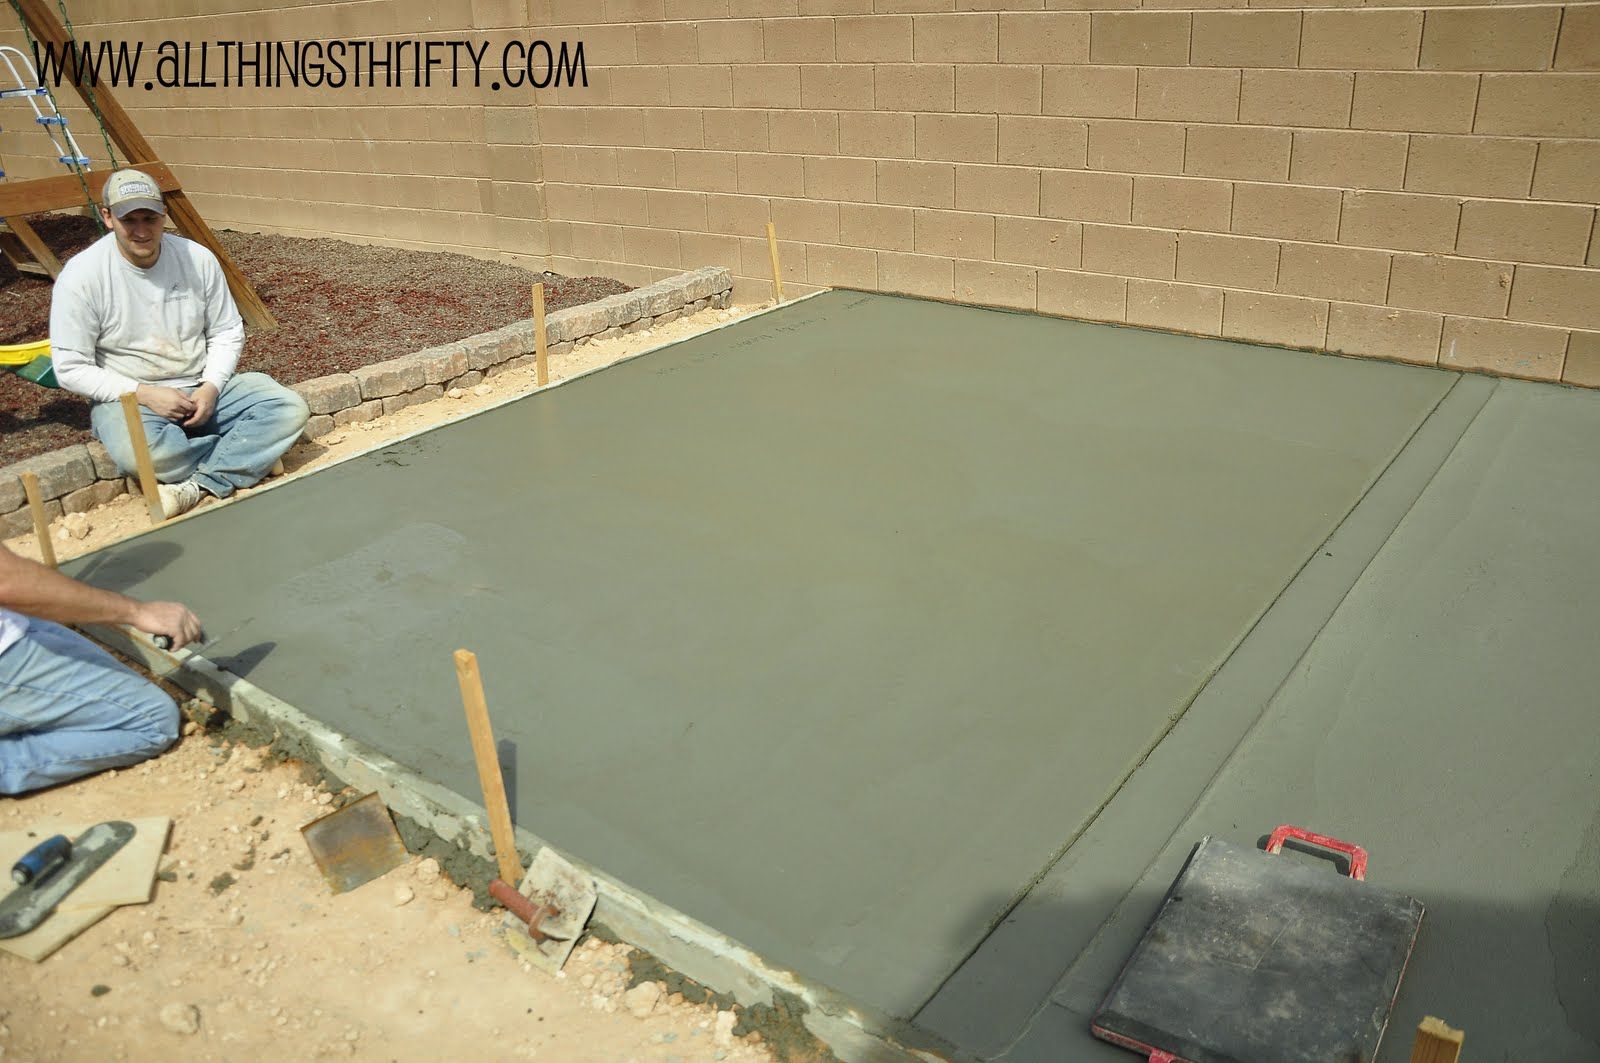 Concrete Patio Project Backyard Landscaping Update. Pinterest Outdoor Patio Decorating Ideas. Laying Patio Pavers In Rain. Patio Restaurant On Broadway. Restaurant Patio Plastic Enclosures. Kingston Outdoor Patio Deep Seating Set 6 Pc. Build A Patio Table. How To Build Interlock Patio. Small Patio Designs Pictures